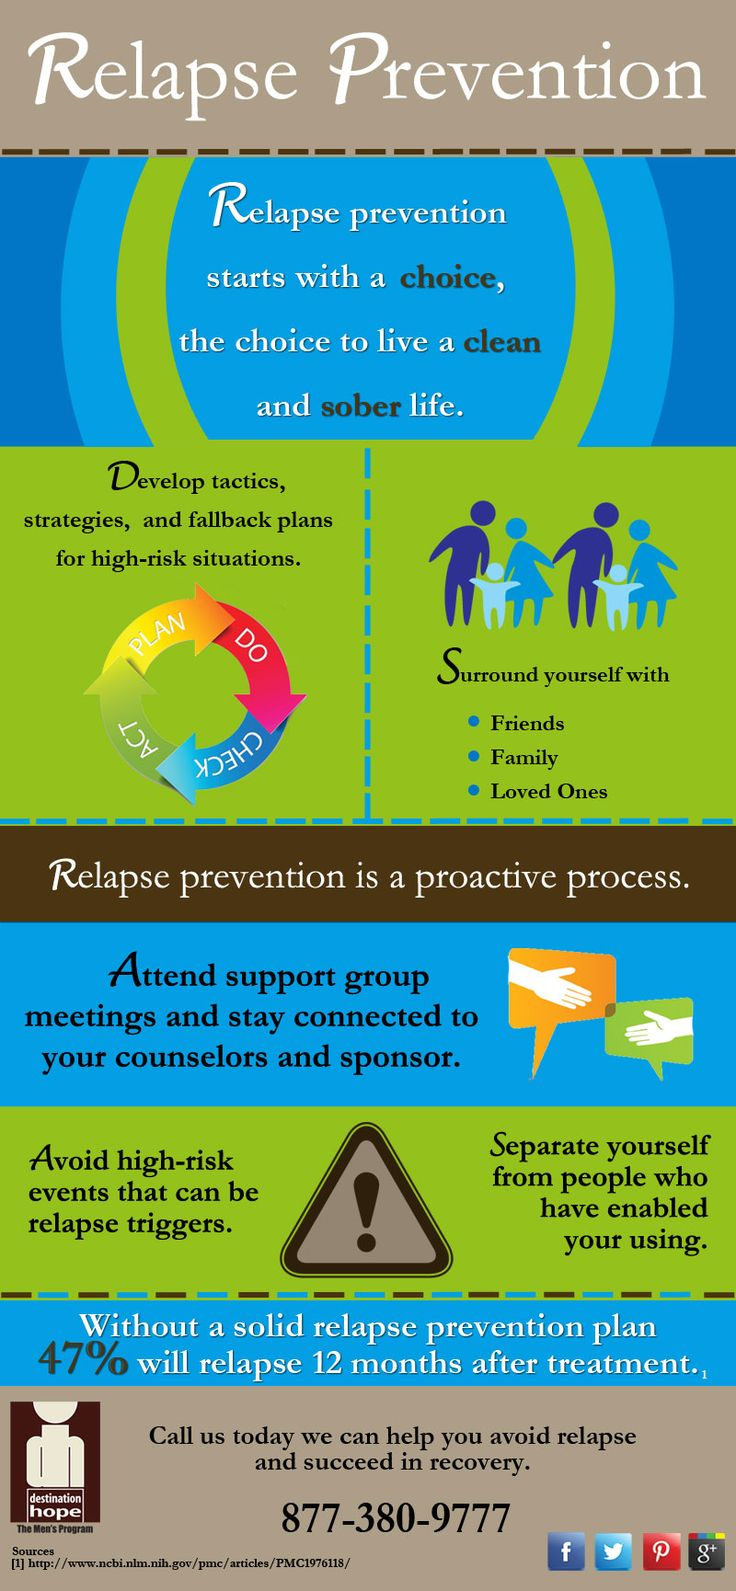 Relapse Prevention: http://www.drugrehabfl.net/wp-content/uploads/2014/02/relapse-prevention-infographic.jpg #addiction #relapseprevention #rehab